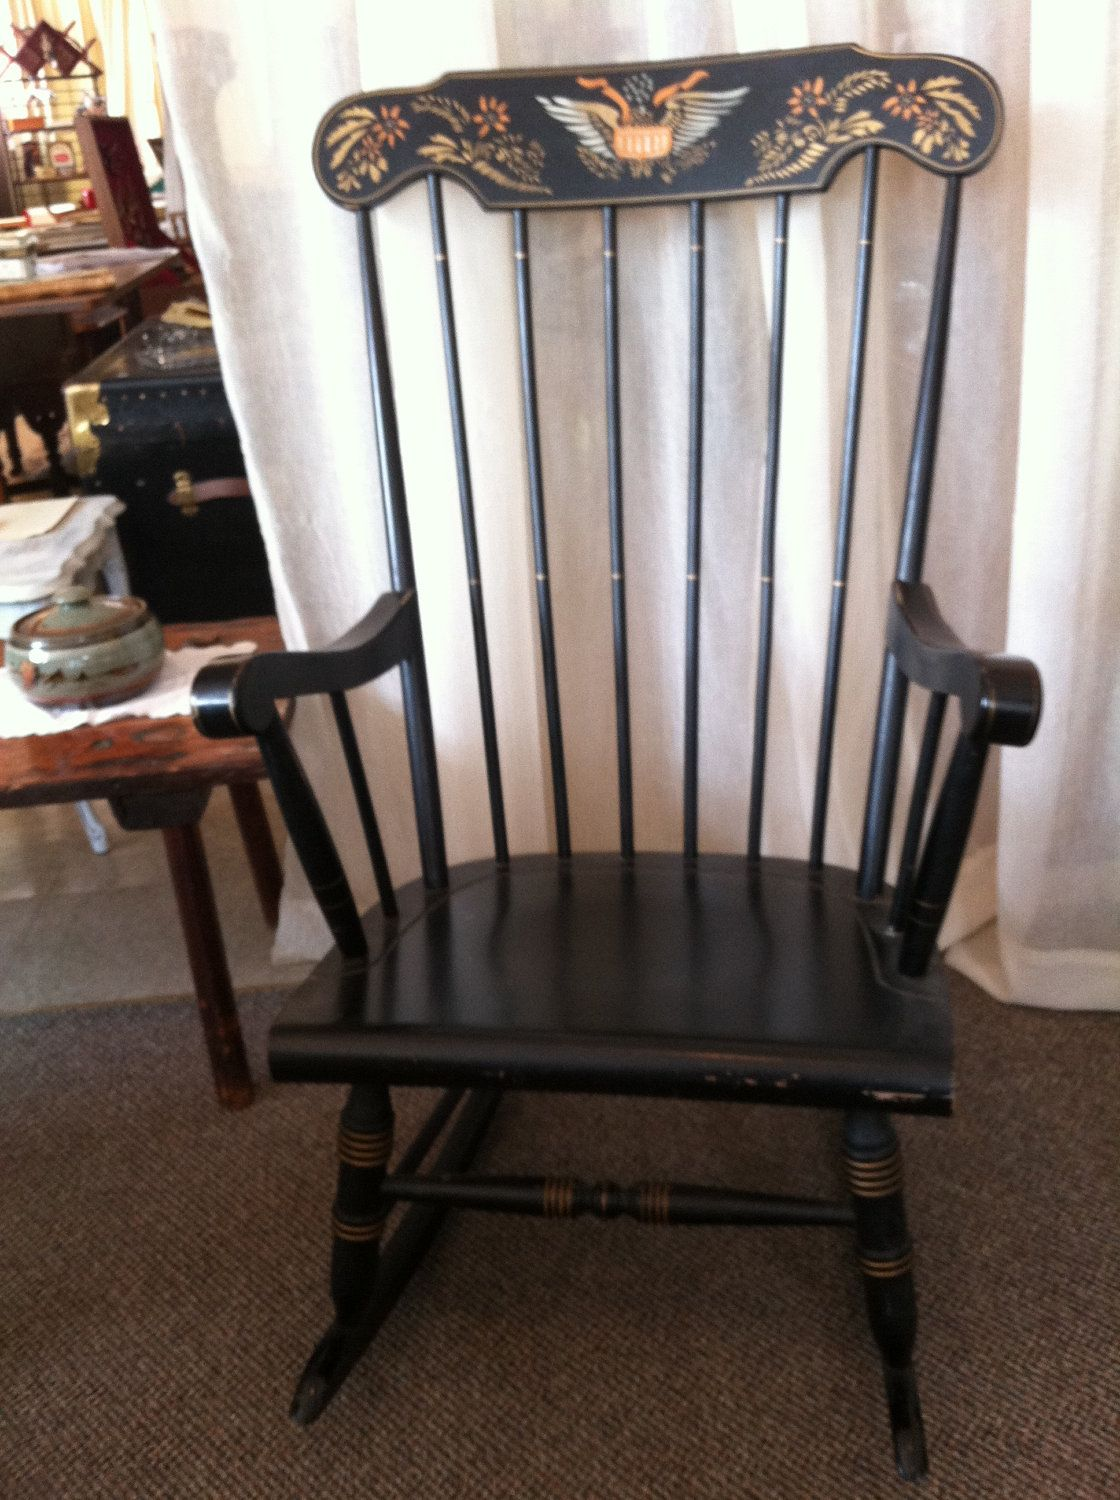 Early American Chair Styles Boon High Replacement Straps Style Rocking Sale Pending Craft Ideas Rocker 95 00 Via Etsy